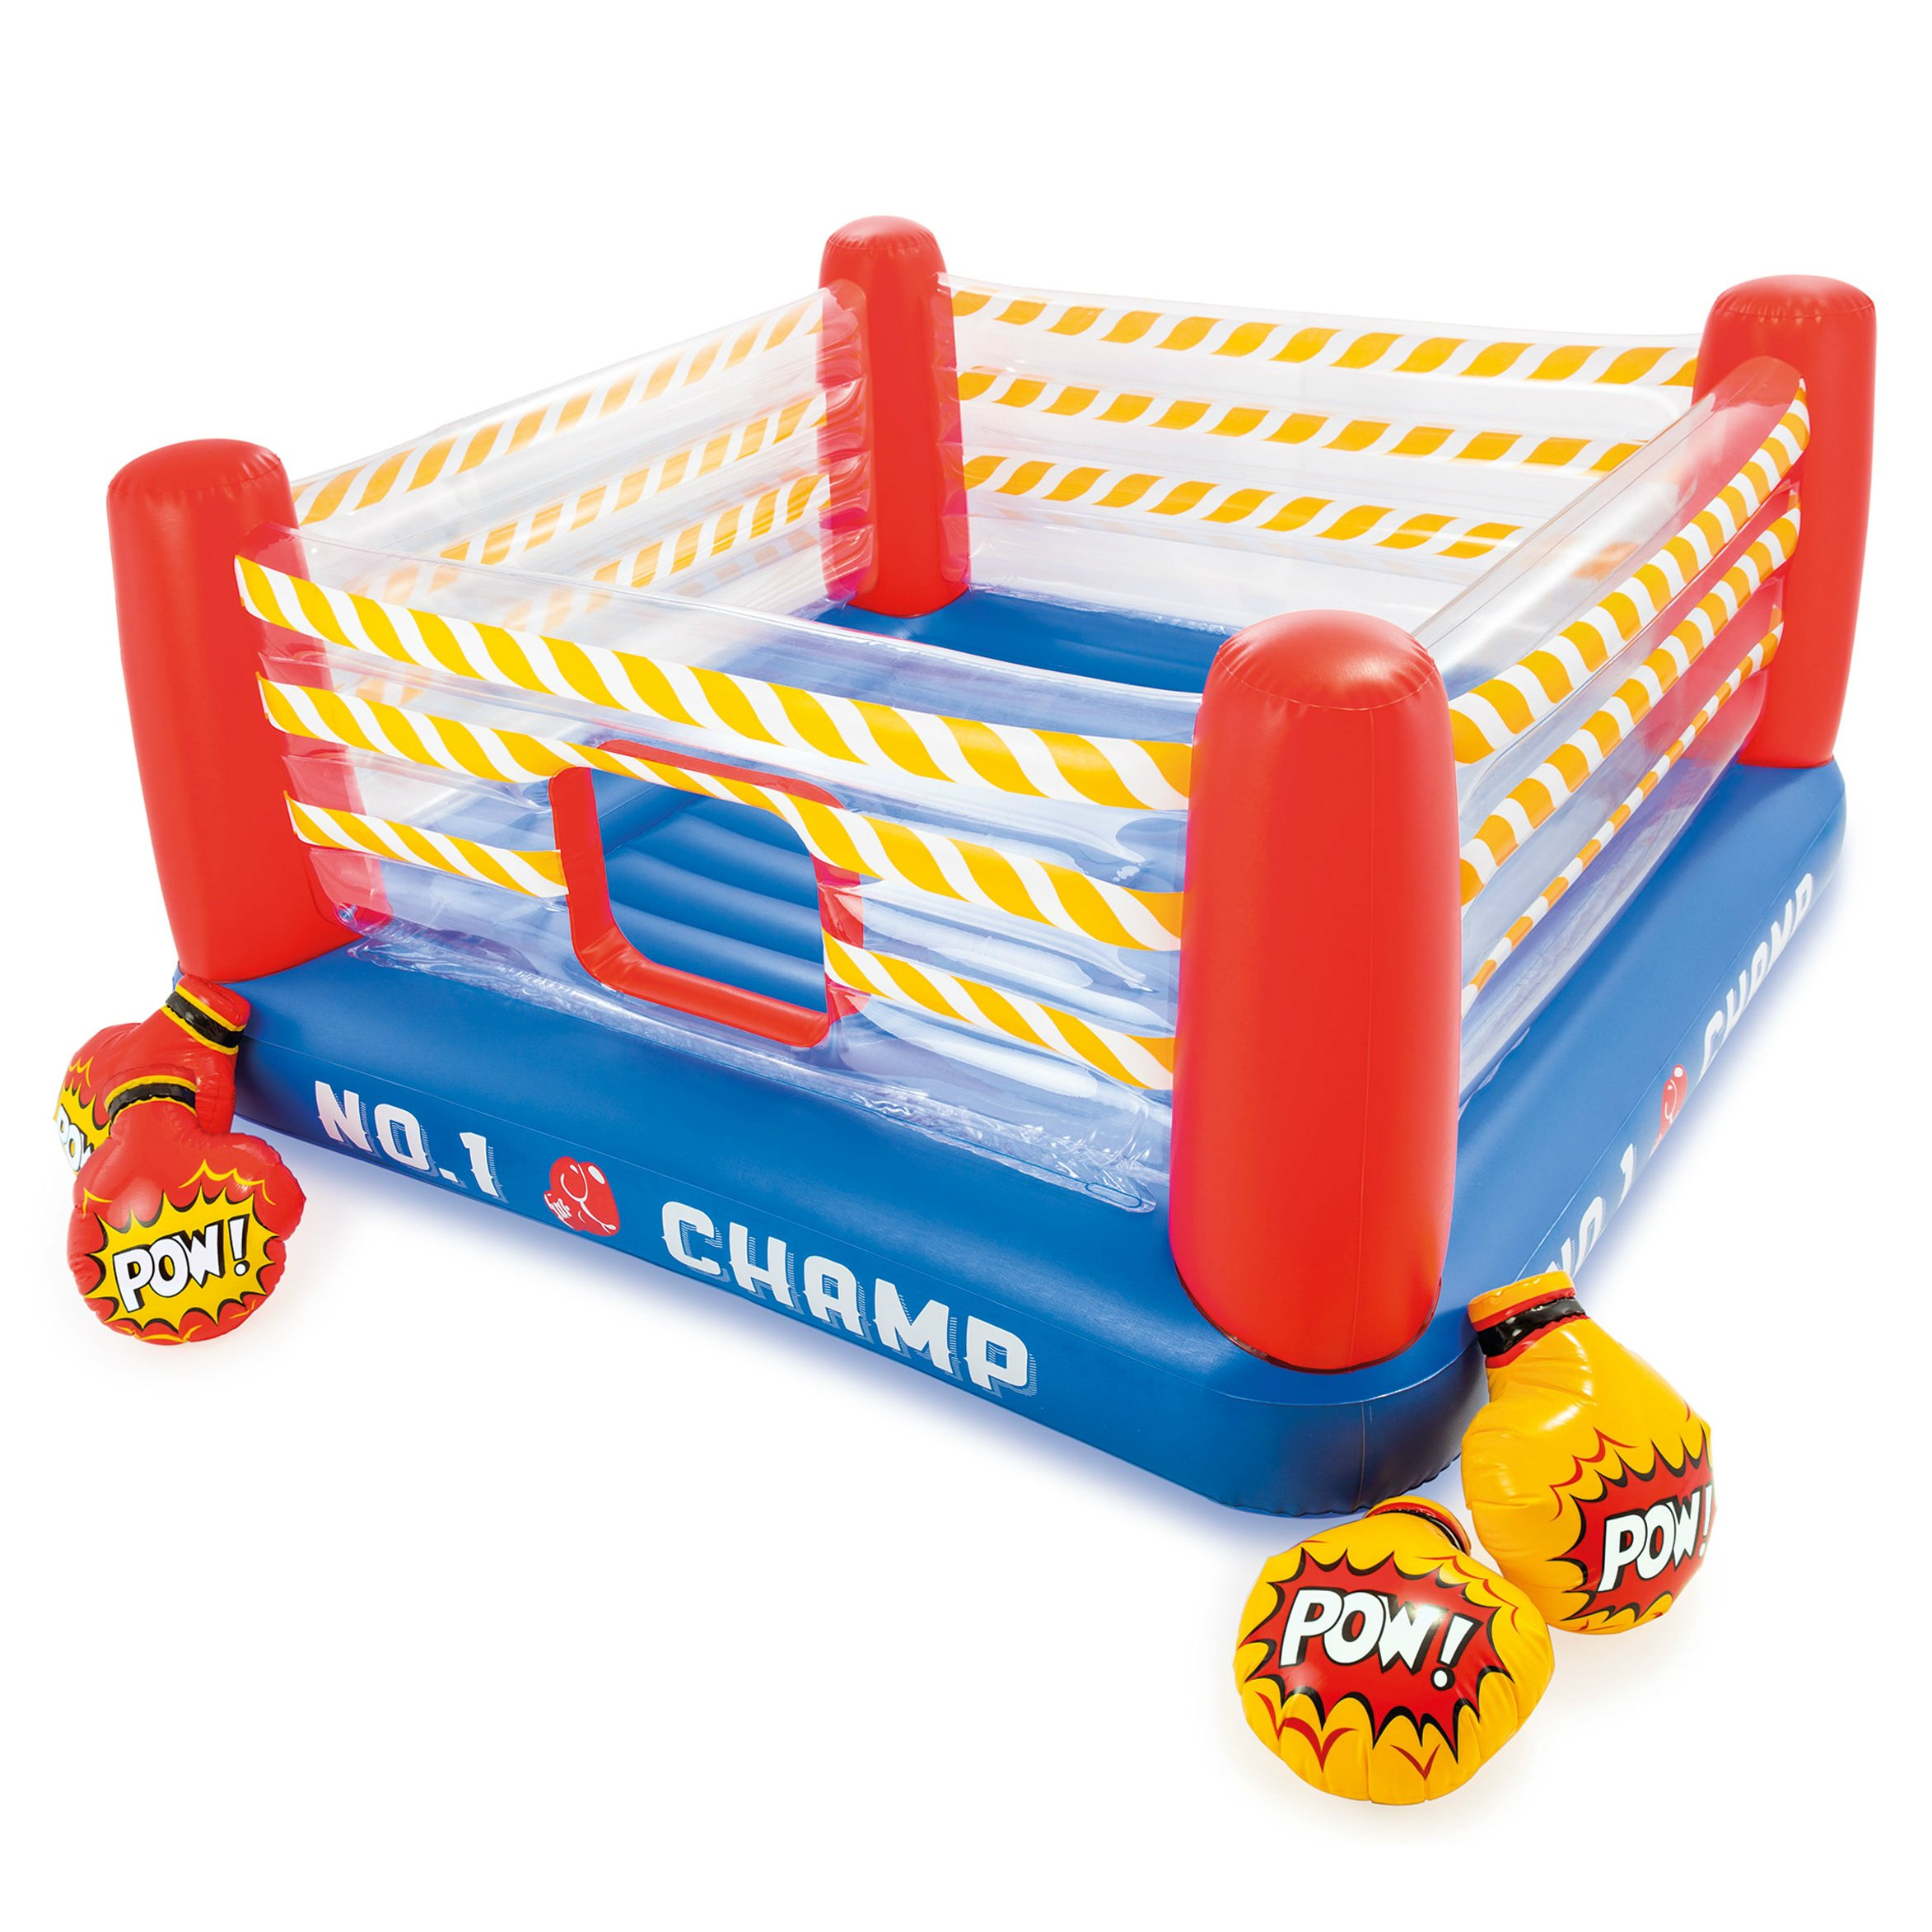 Intex Jump-O-Lene Boxing Ring Inflatable Bouncer, 89'' X 89'' X 43.5'', for Ages 5-7